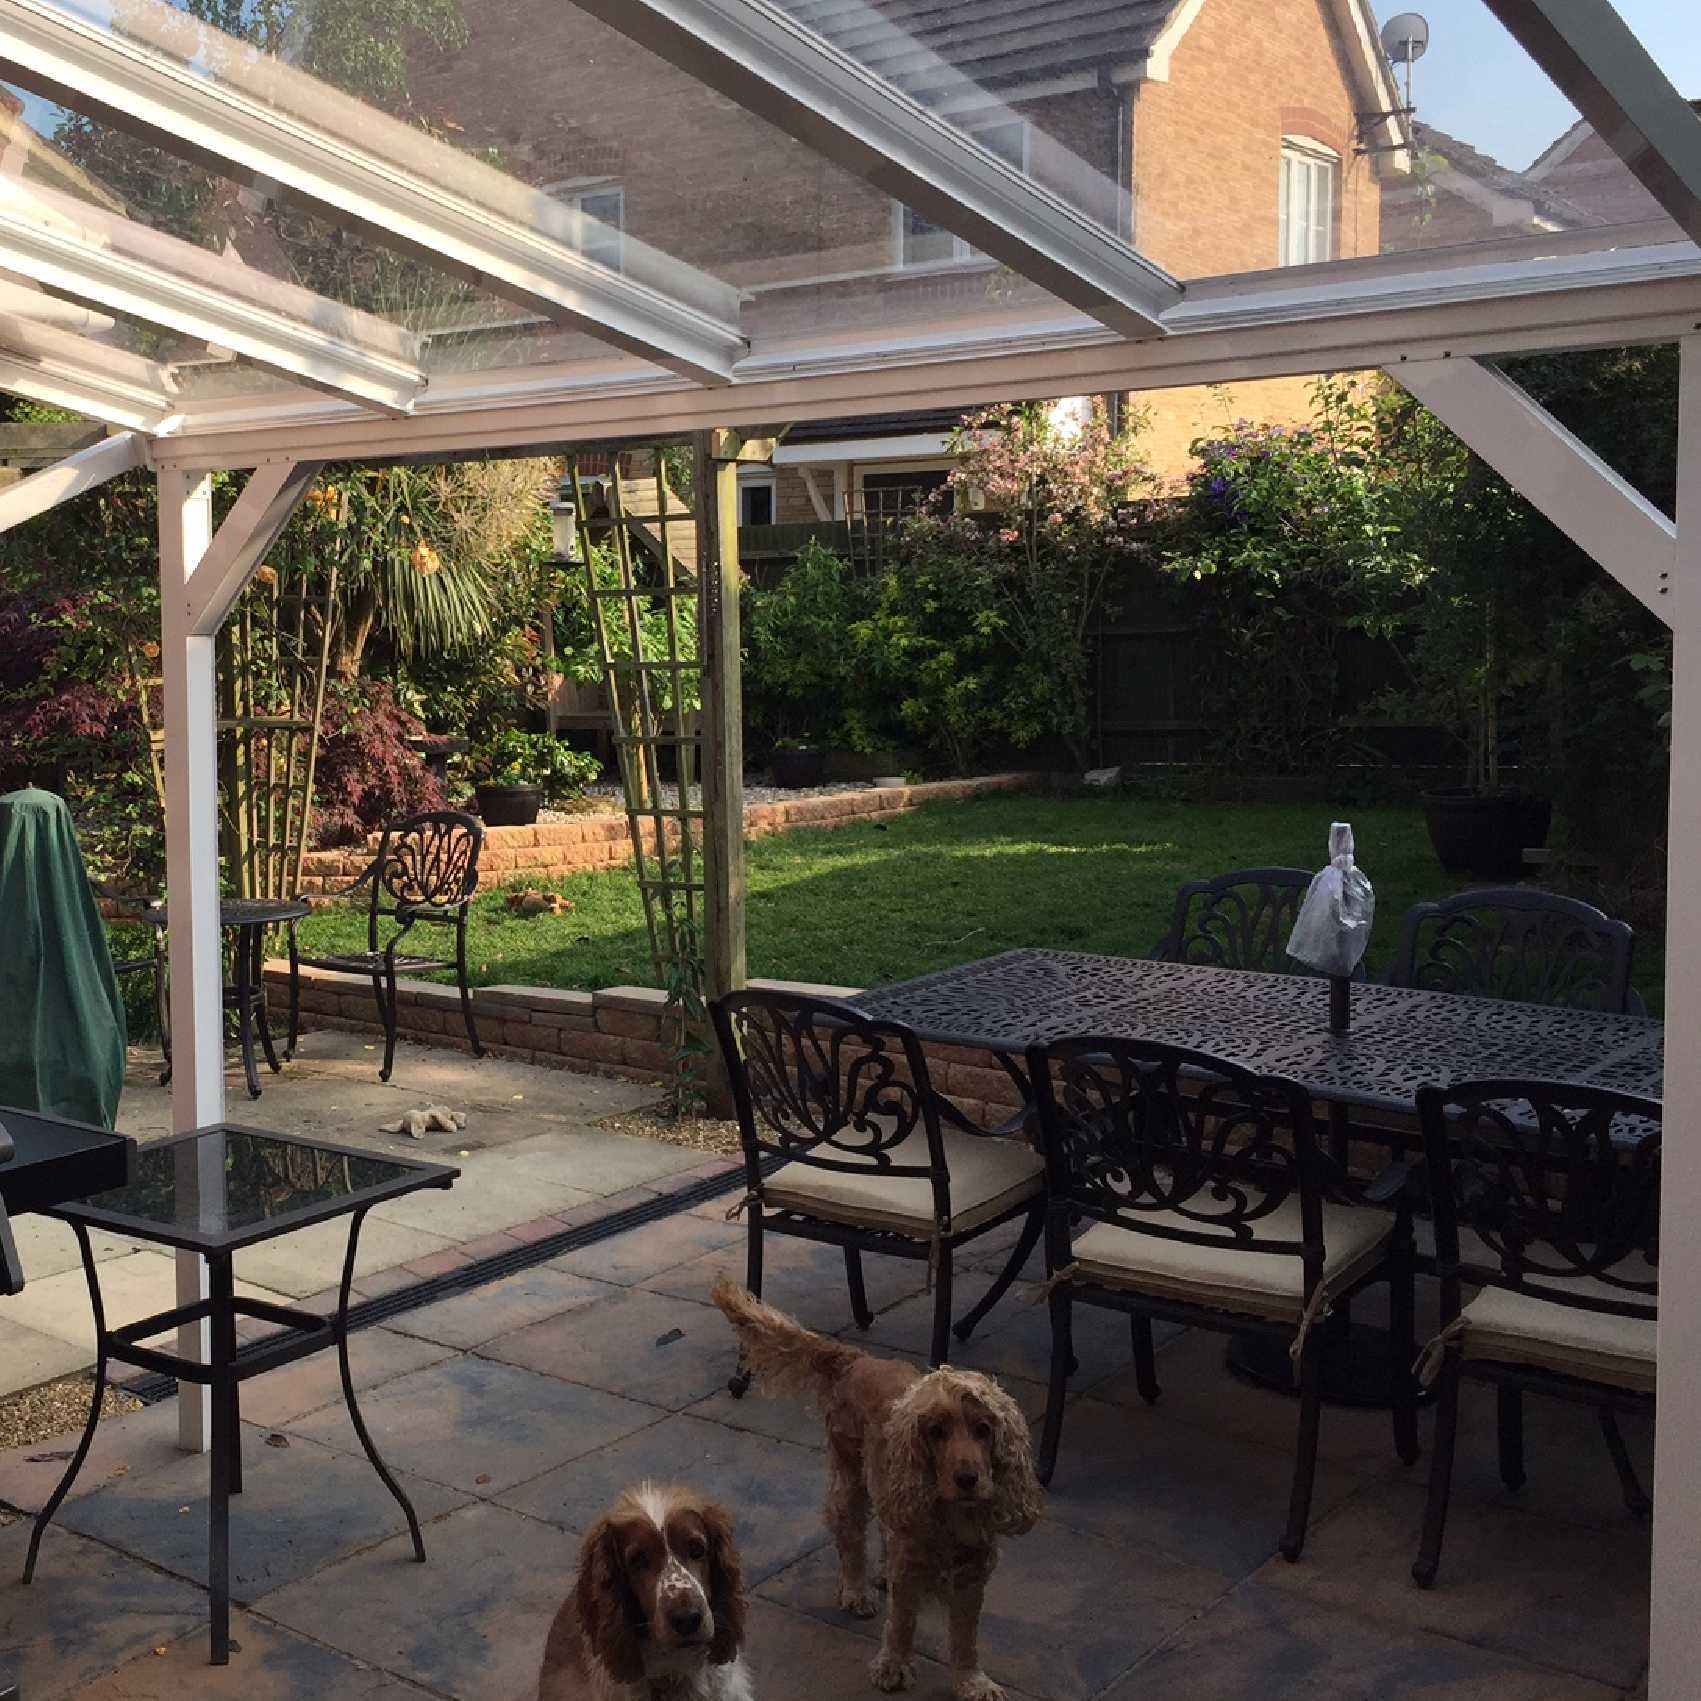 Affordable Omega Smart White Lean-To Canopy UNGLAZED for 6mm Glazing - 2.8m (W) x 2.5m (P), (2) Supporting Posts